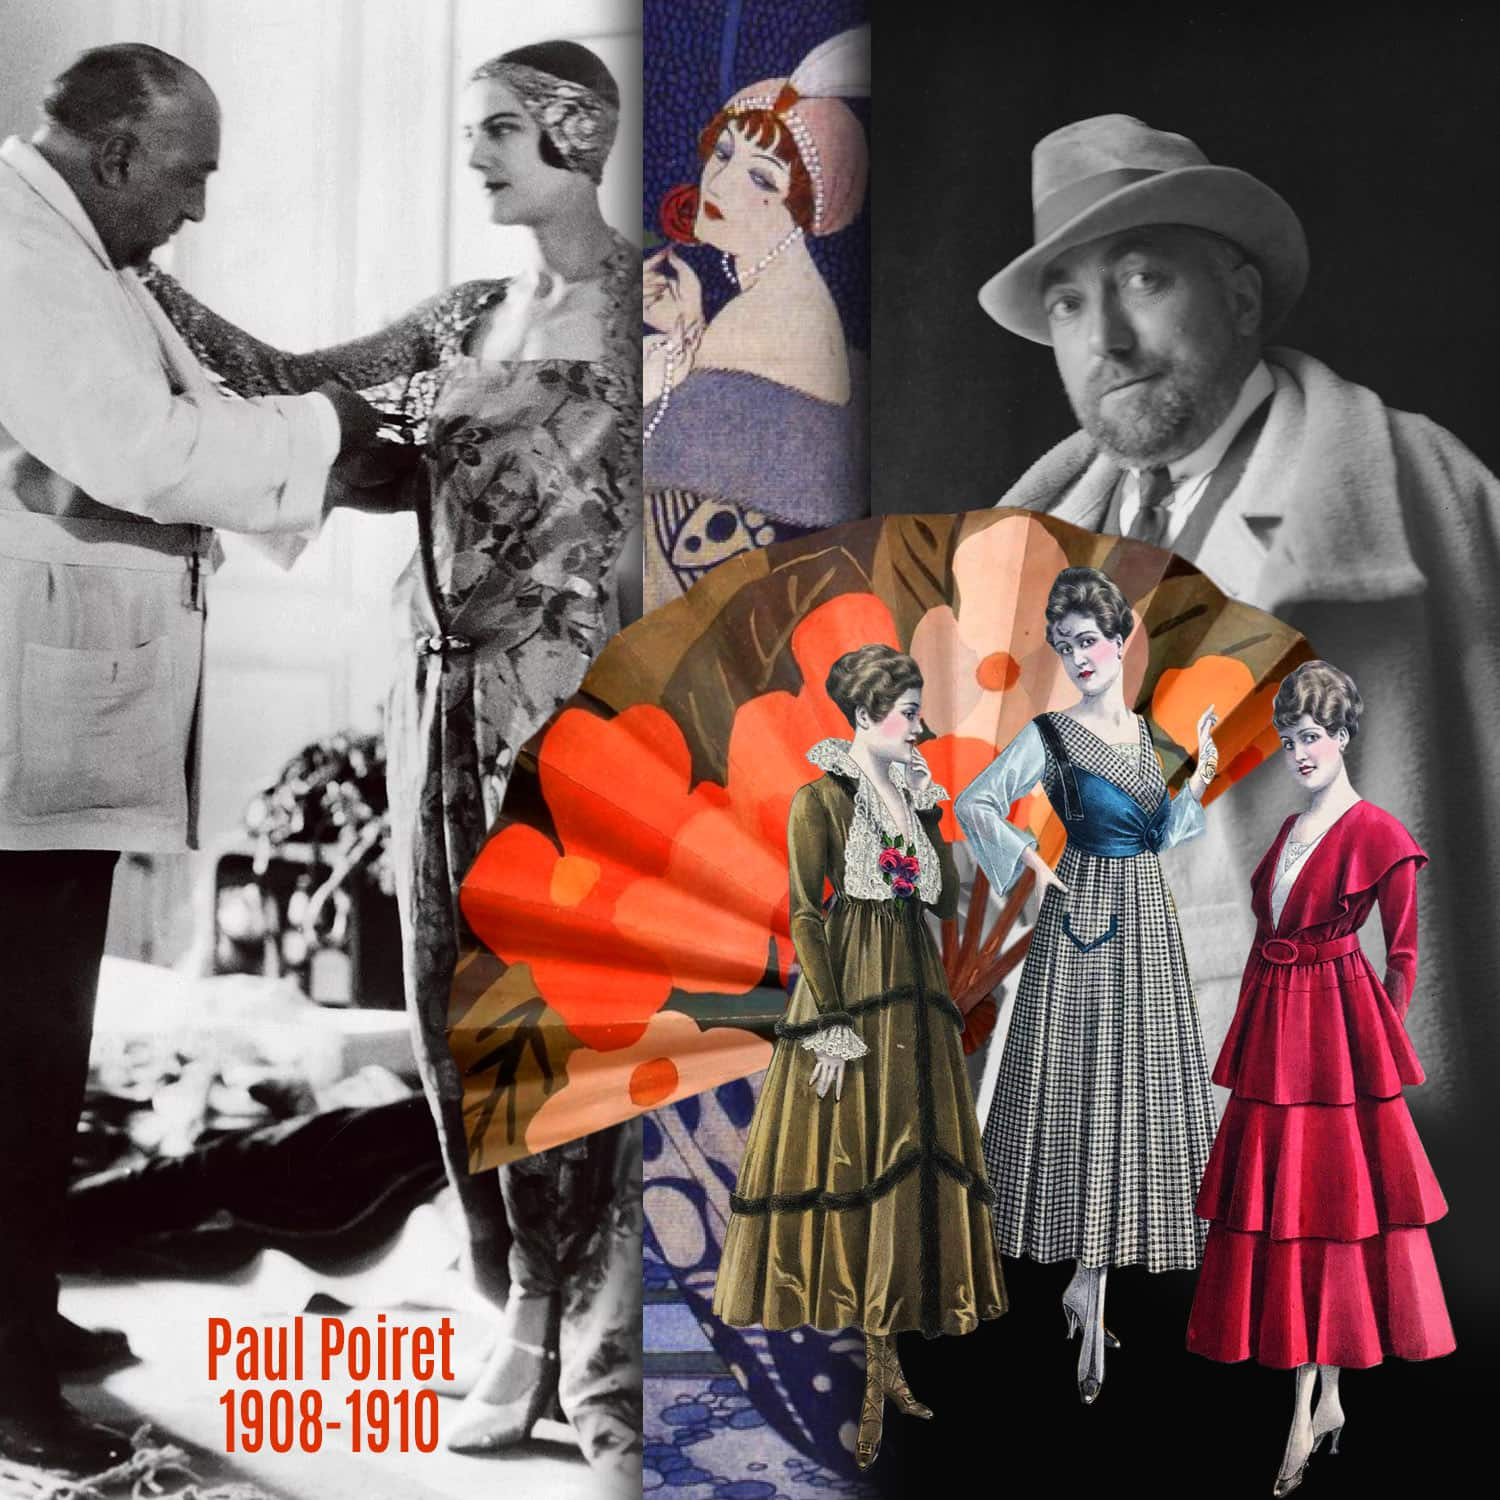 Paul Poiret 1908-1910 inventions